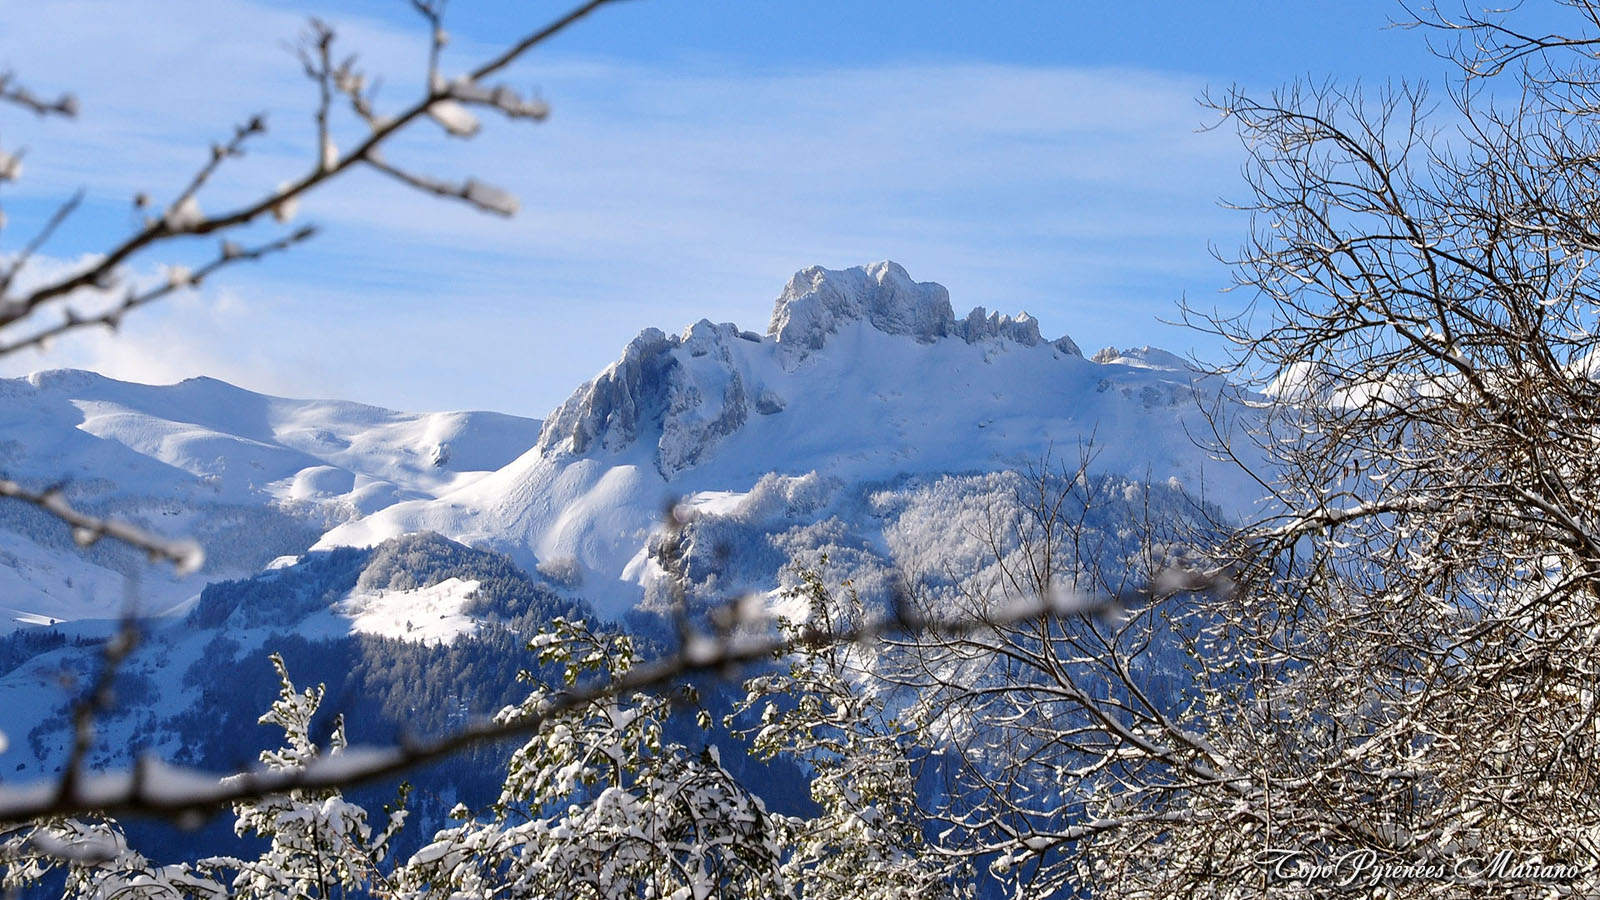 Article-Vallee-d-Ossau-hiver_027